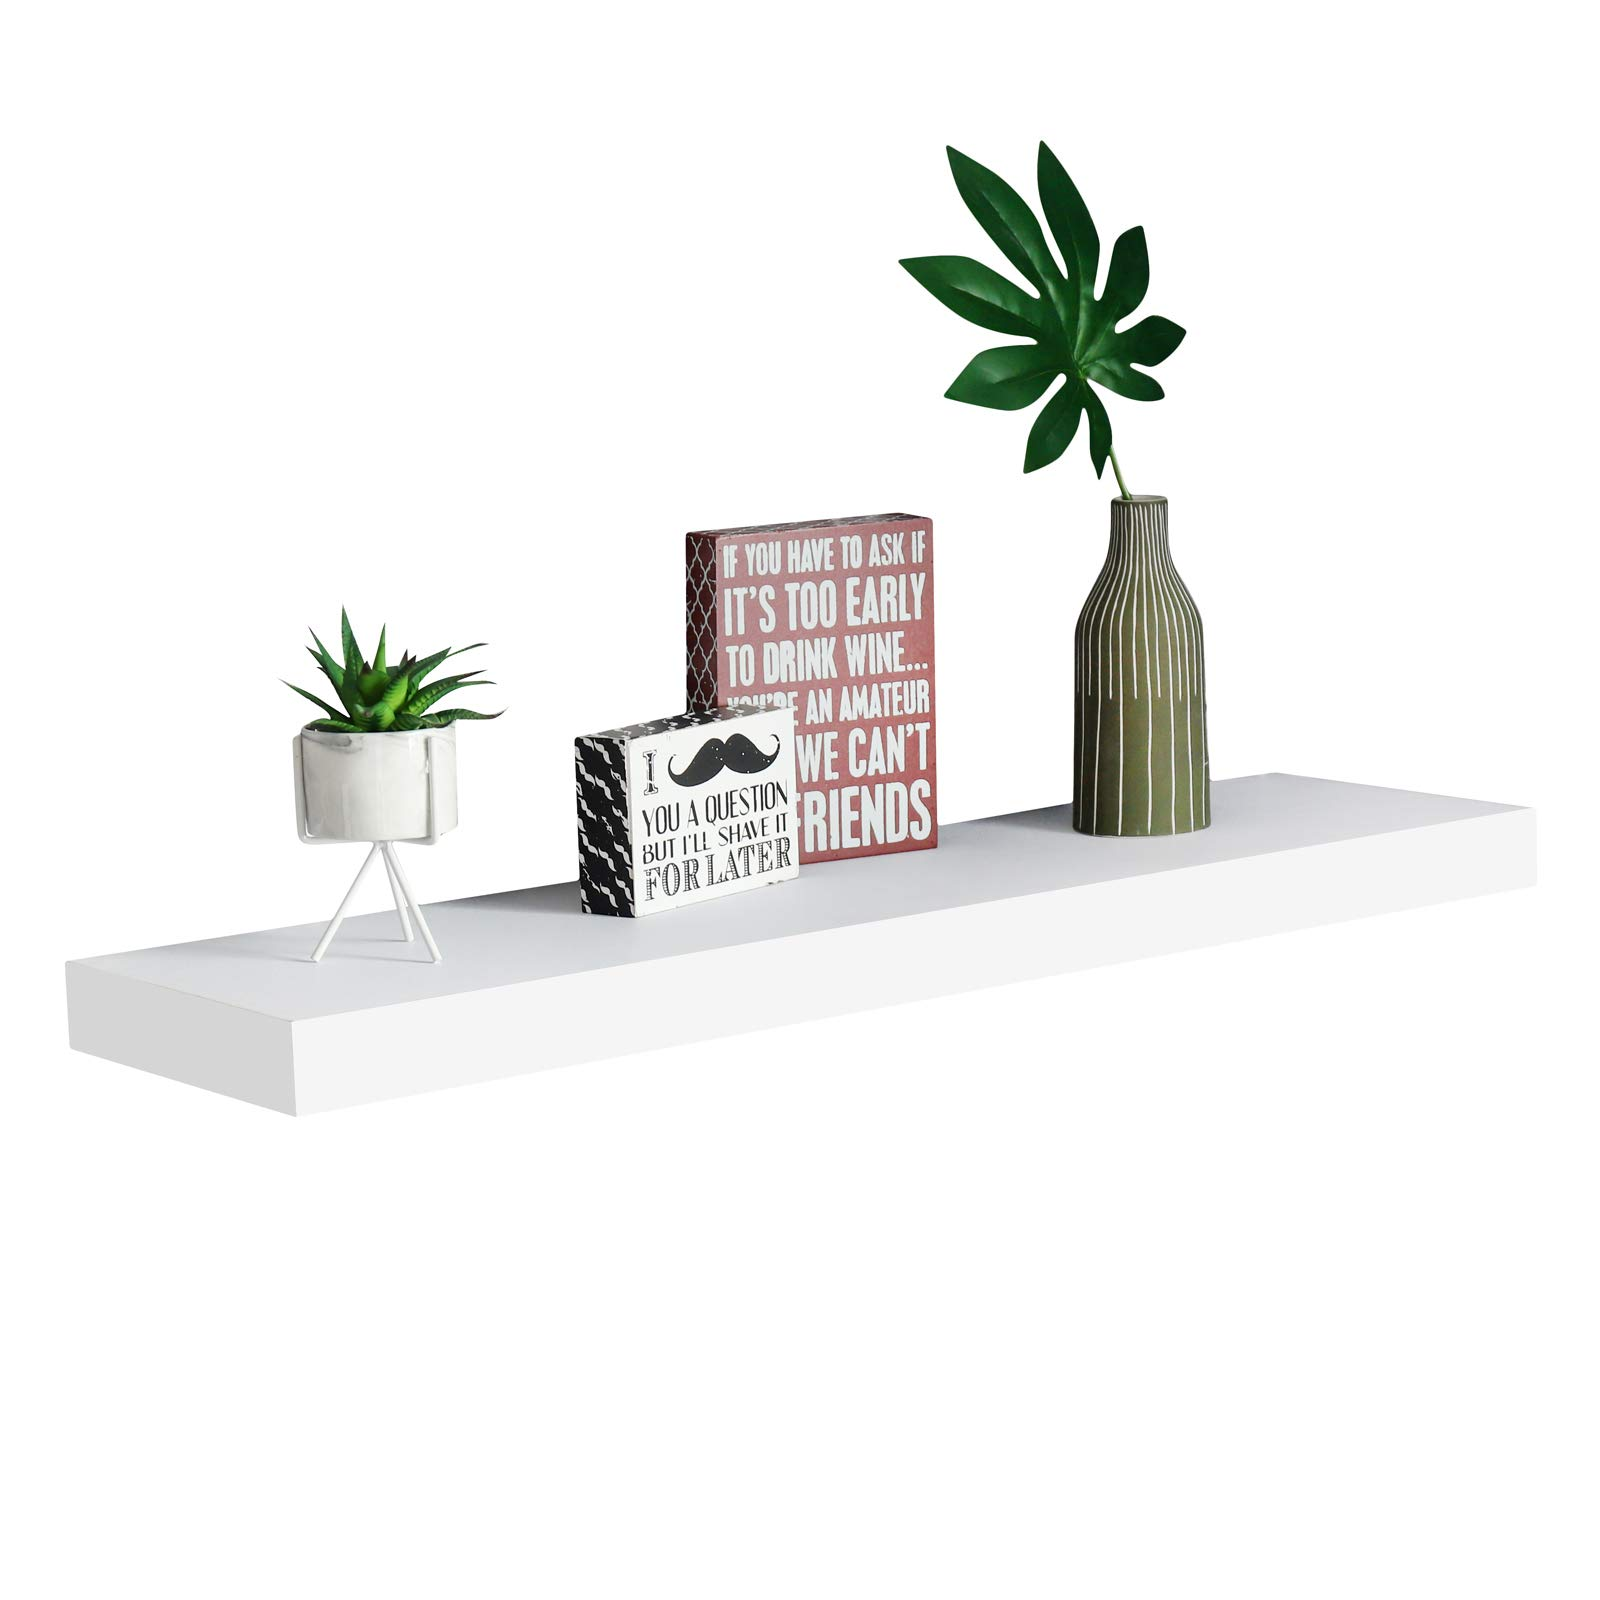 WELLAND 2'' Thickness Mission Floating Wall Shelf,Approx 36-inch Length, White by WELLAND